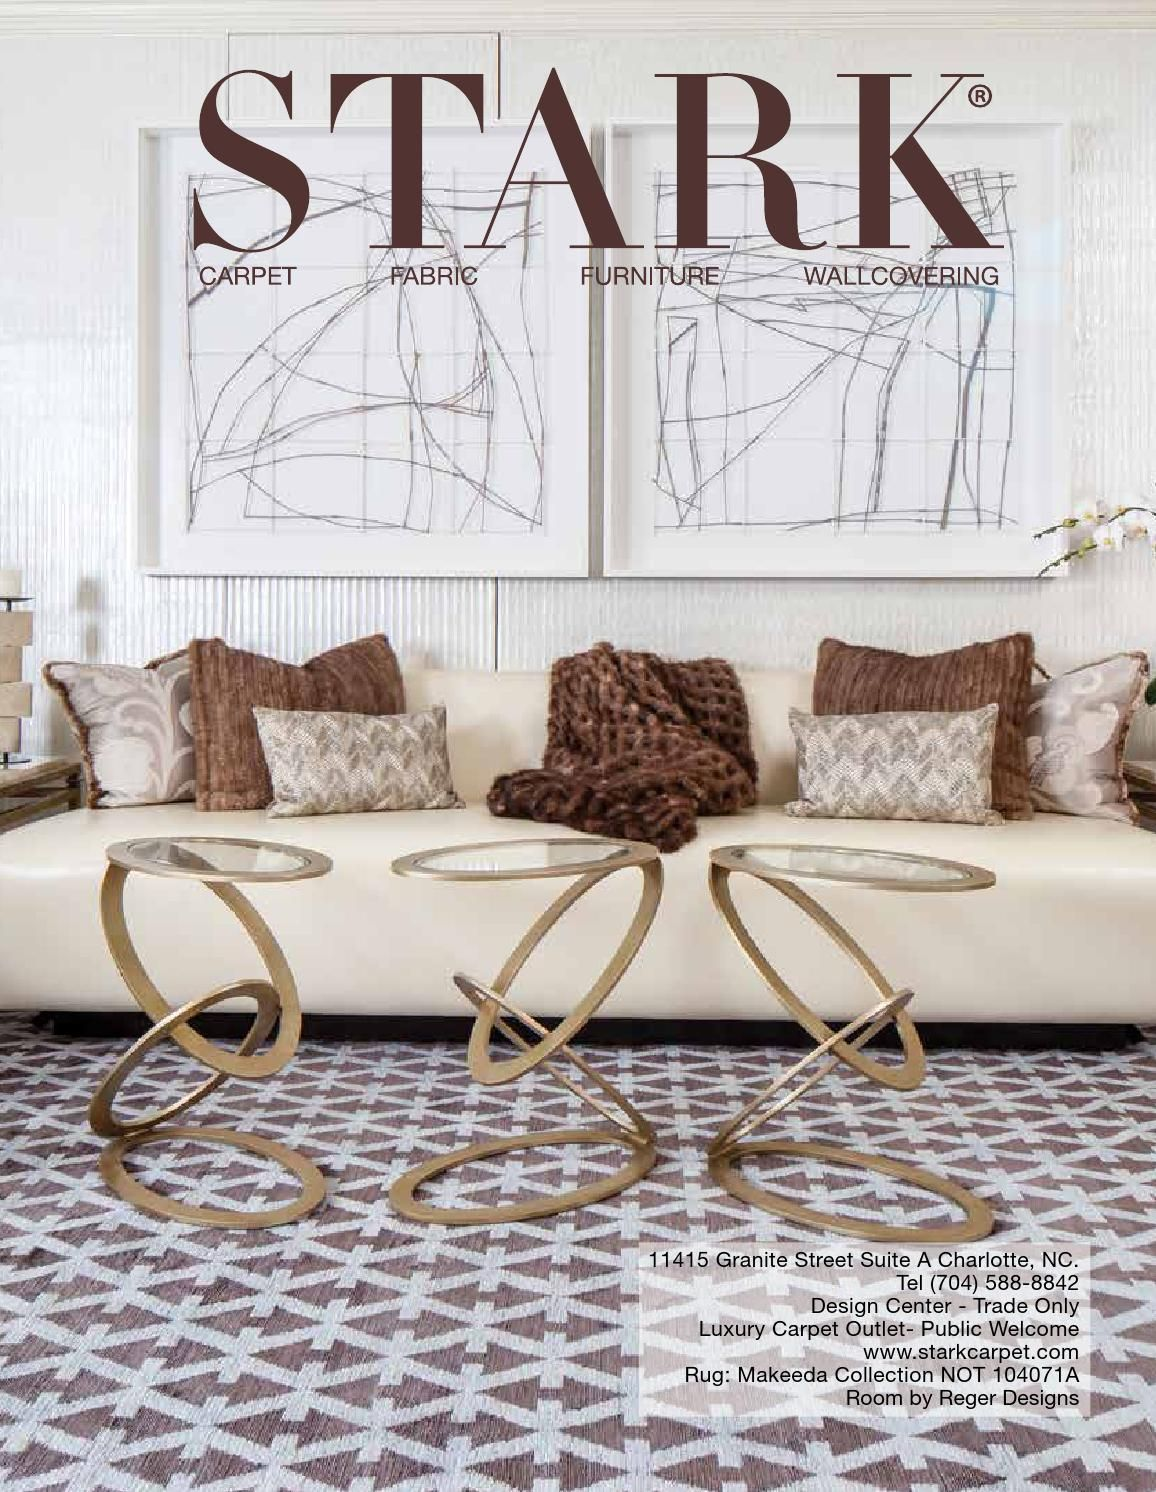 Junejuly14triangle Urban Home Magazine, Is The Most Widely Read Home And  Garden Magazine In The